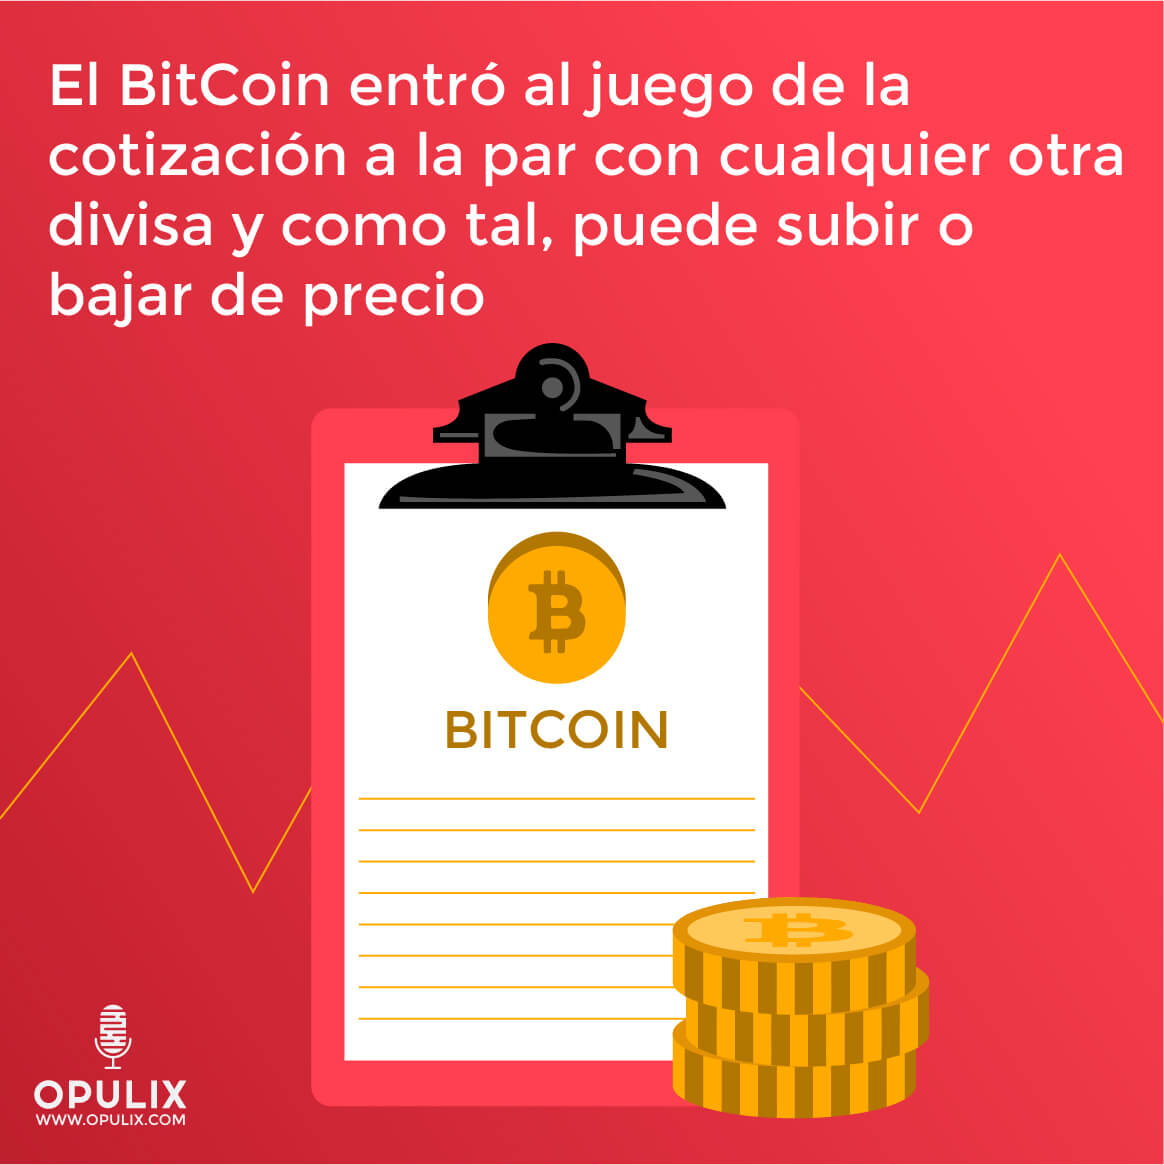 ¿Es el BitCoin una pirámide o multinivel?